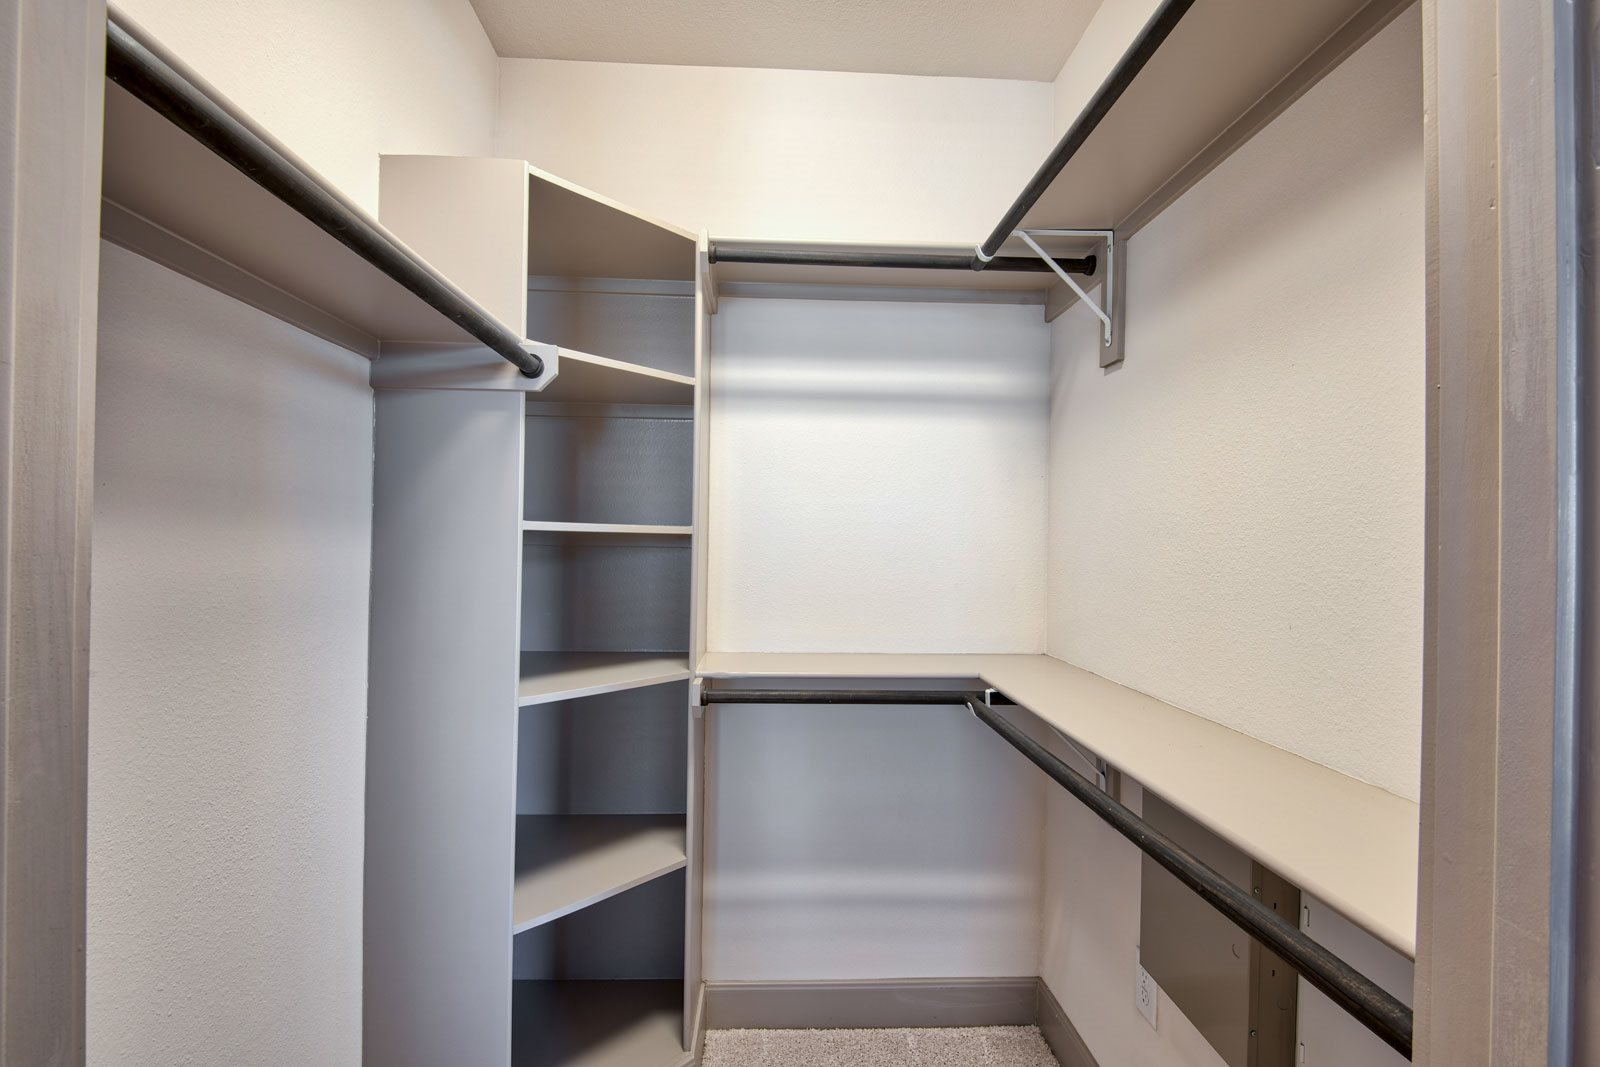 Walk-In Closets with Custom Shelving at Midtown Houston by Windsor, Houston, Texas